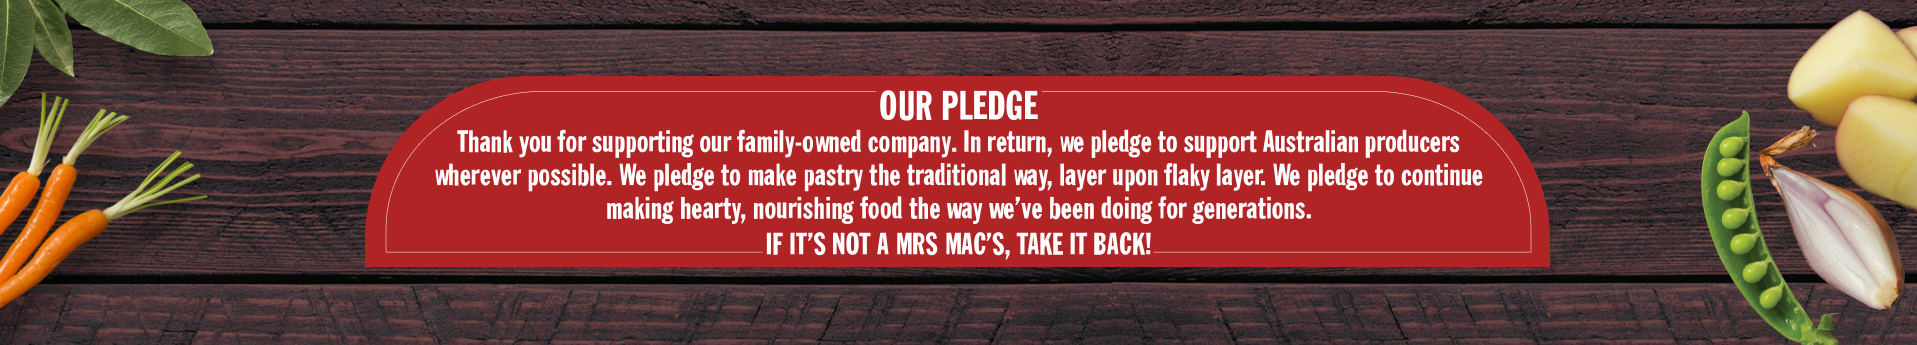 pledge-desktop-banner